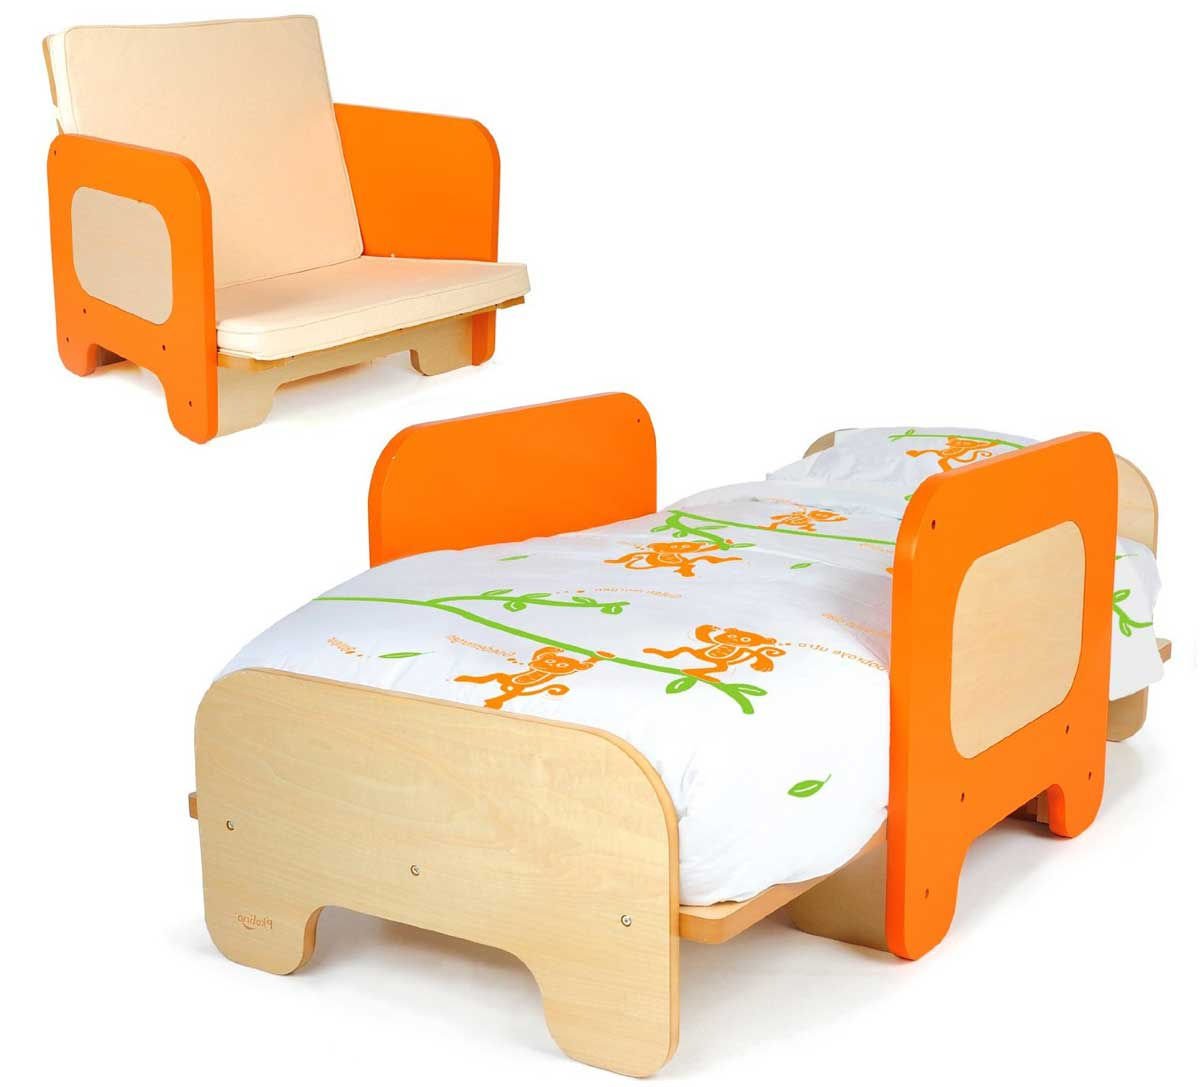 Toddler Couch Bed And Chairs — Oz Visuals Design : A Different With Widely Used Toddler Sofa Chairs (View 16 of 20)